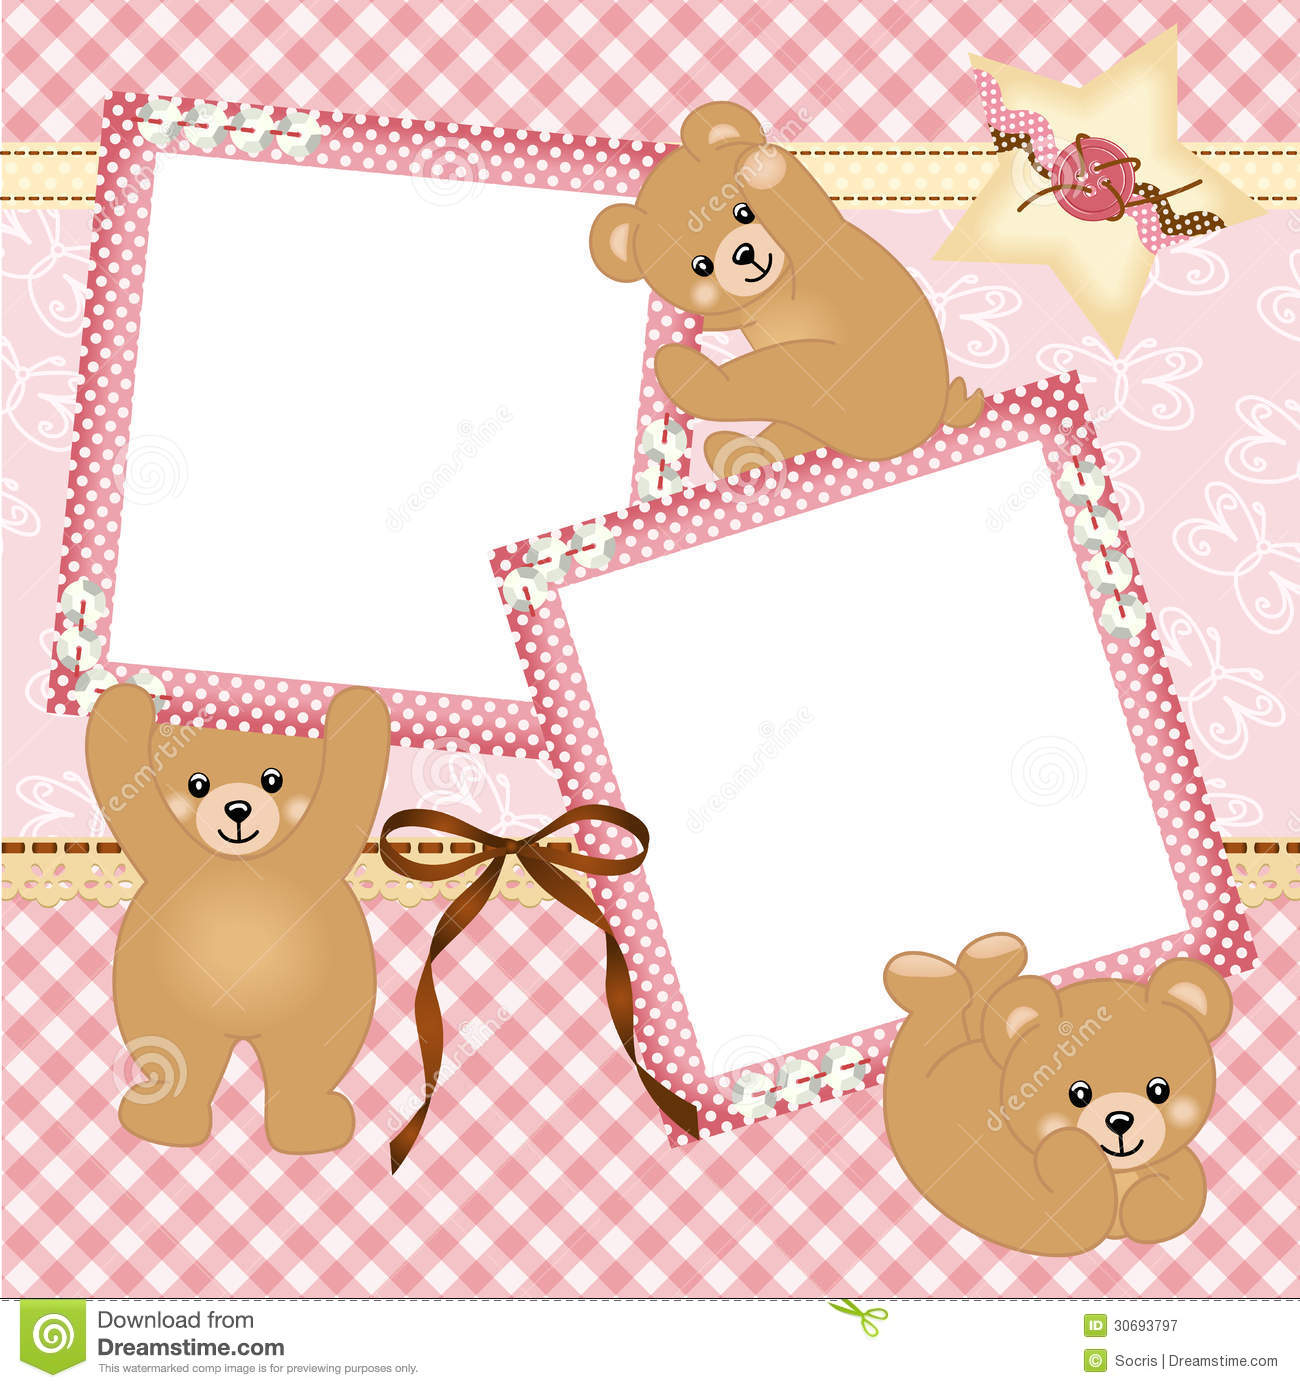 birthday girl picture frame ; baby-girl-photo-frame-teddy-bear-scalable-vectorial-image-representing-isolated-white-30693797